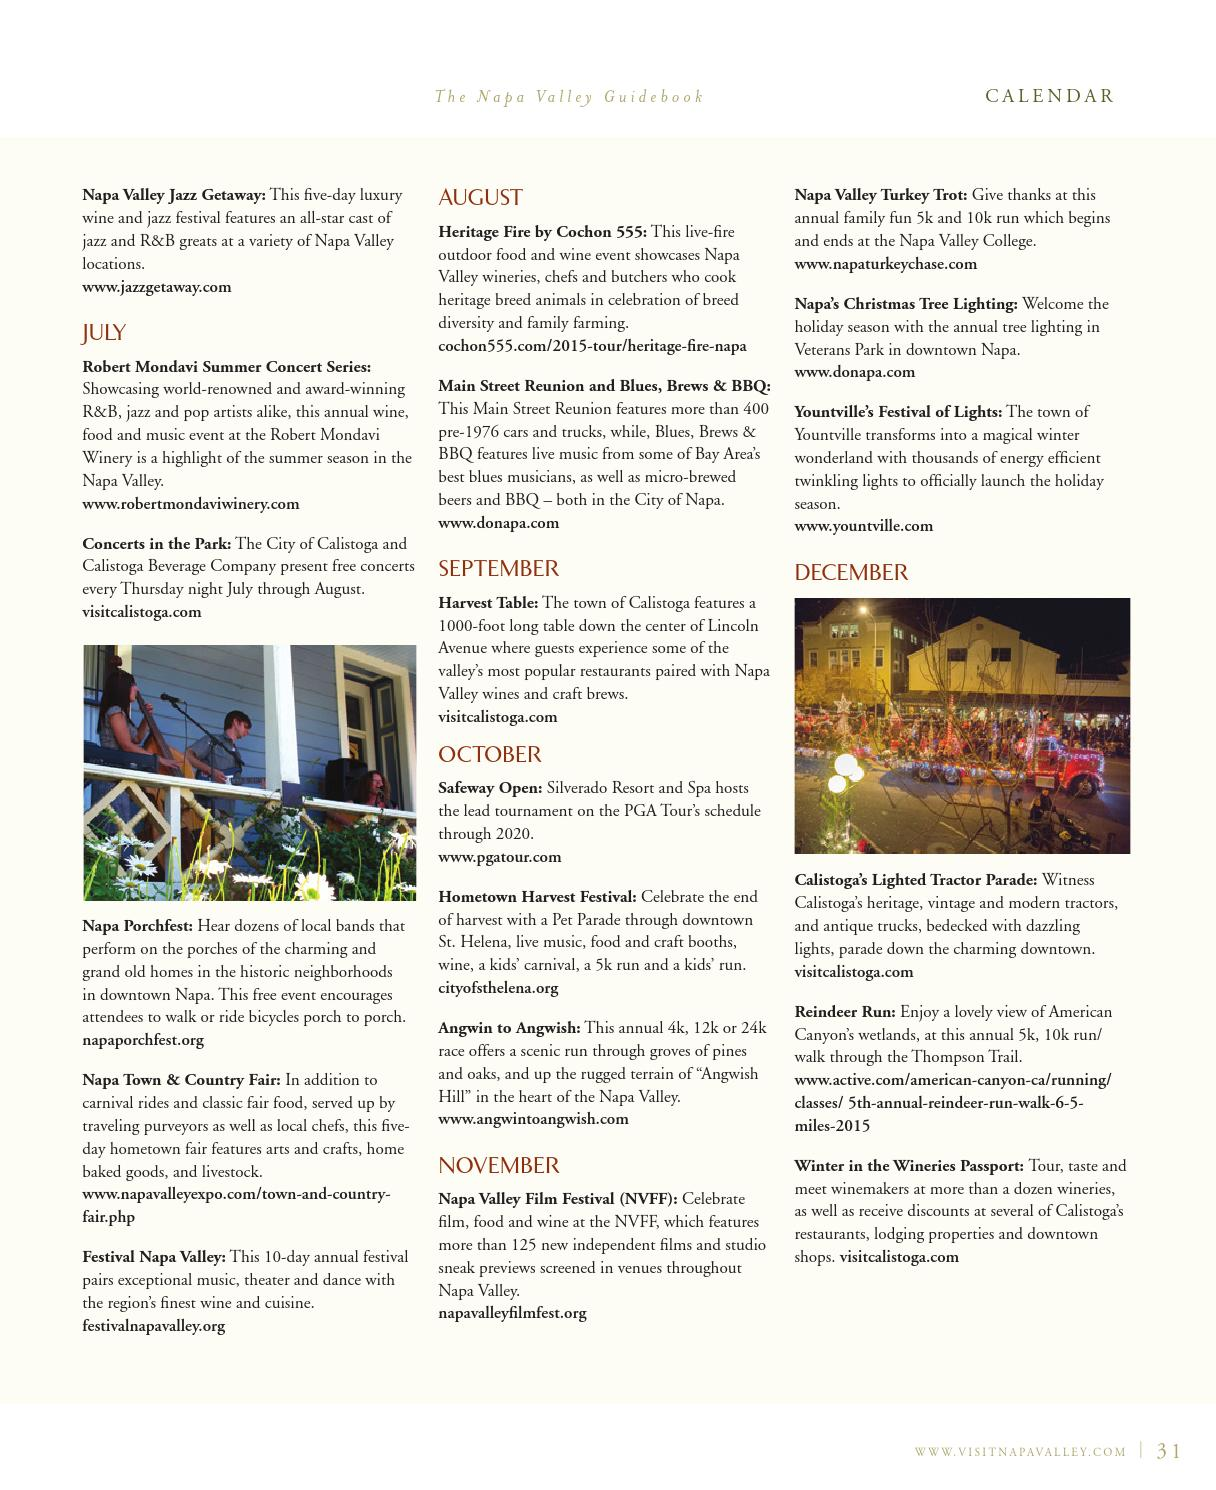 The Official Napa Valley Visitor\'s Guide - 2016 by Visit Napa Valley ...